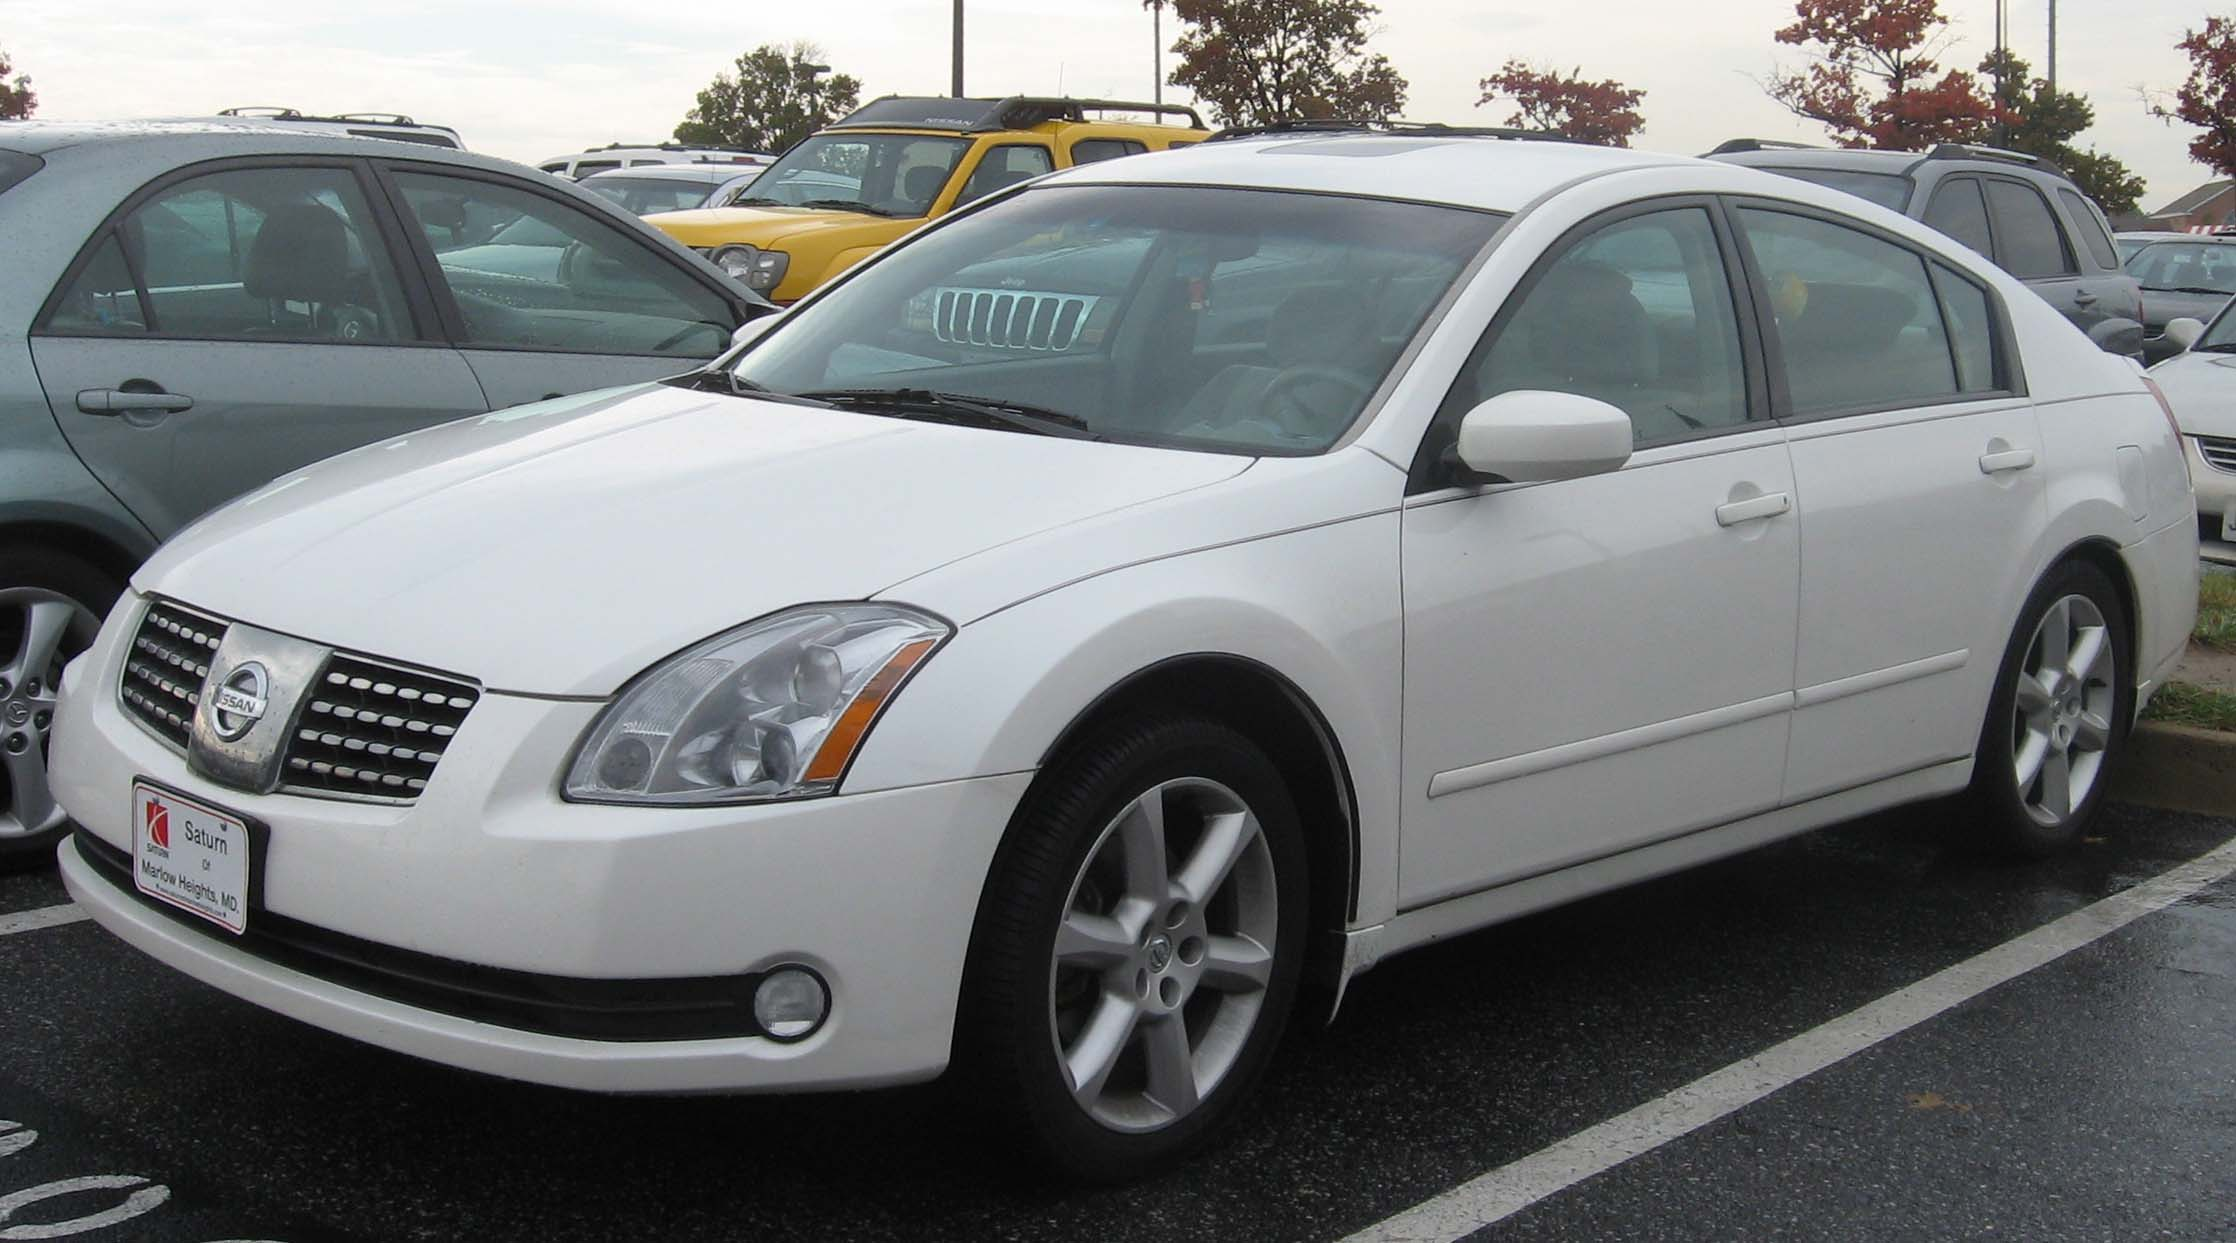 2006 nissan maxima black on black image collections hd cars 2006 nissan maxima black on black image collections hd cars 2006 nissan maxima black on black vanachro Gallery